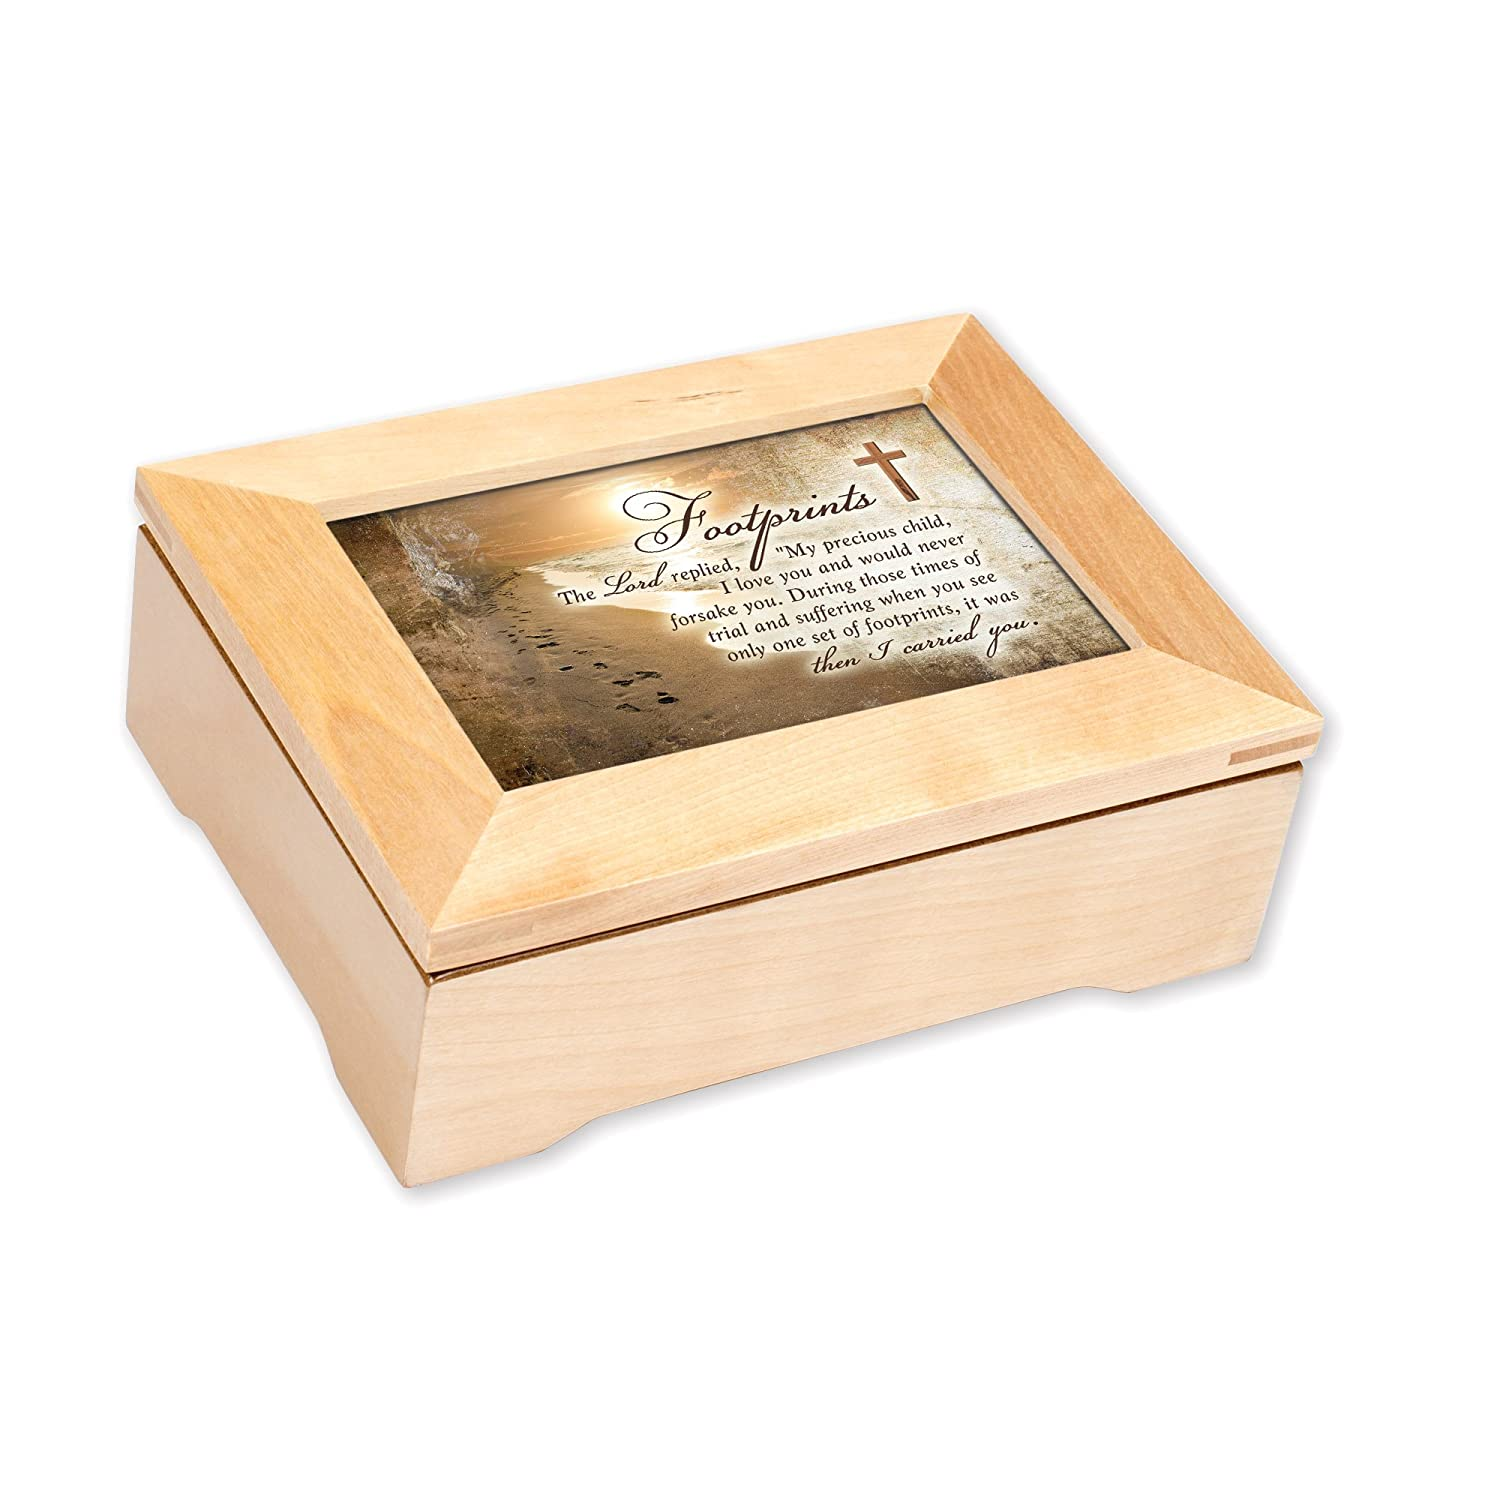 Amazon.com: Footprints in the Sand 8 x 6 Inch Wood Keepsake Music ...